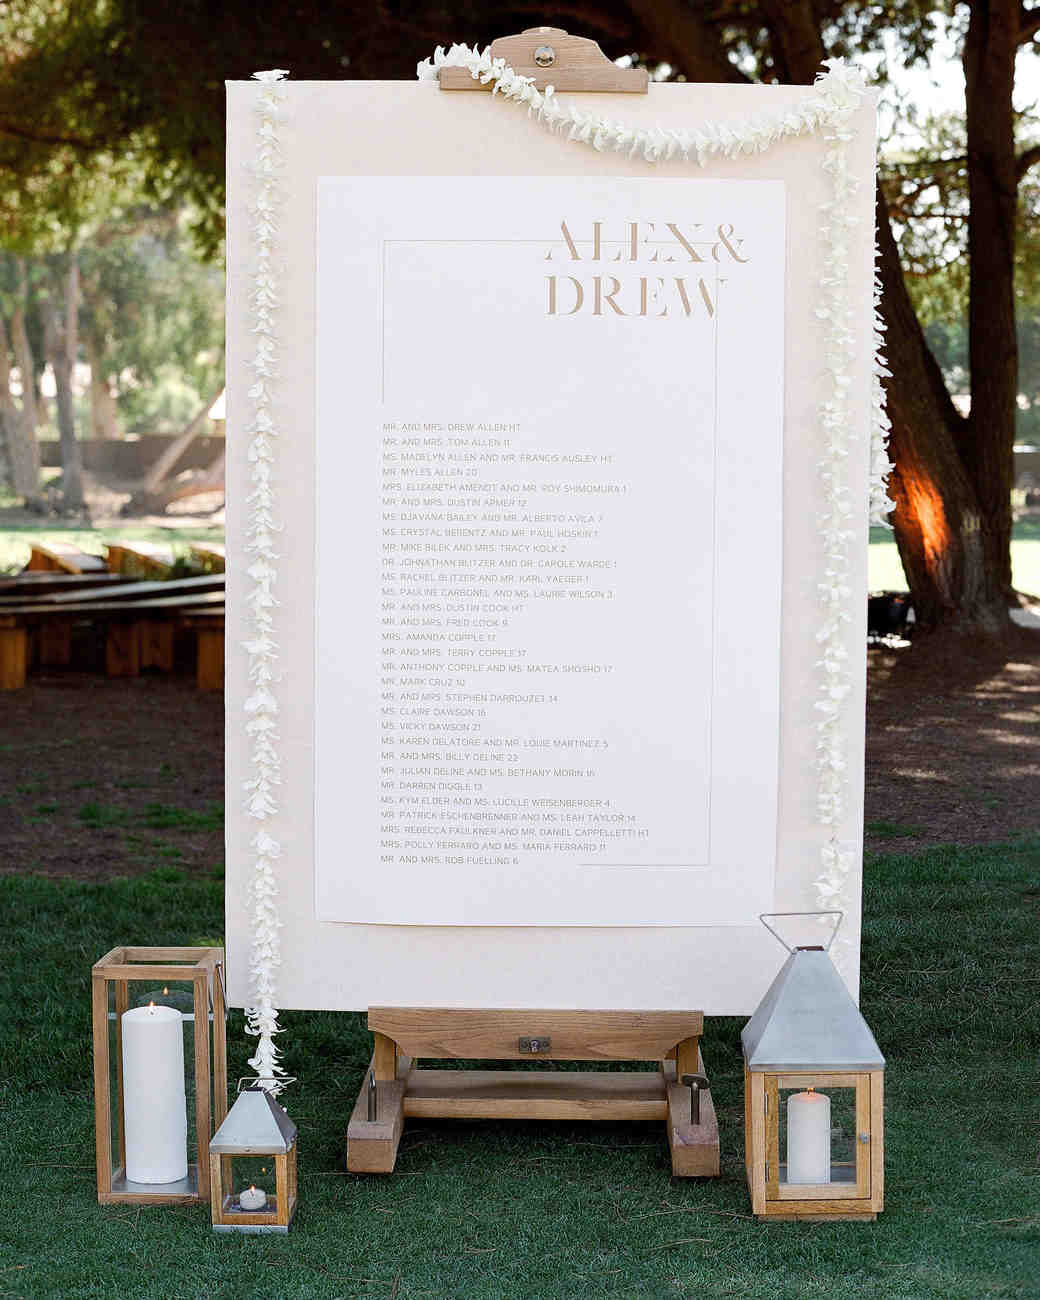 alex drew california wedding seating chart sign with lanterns